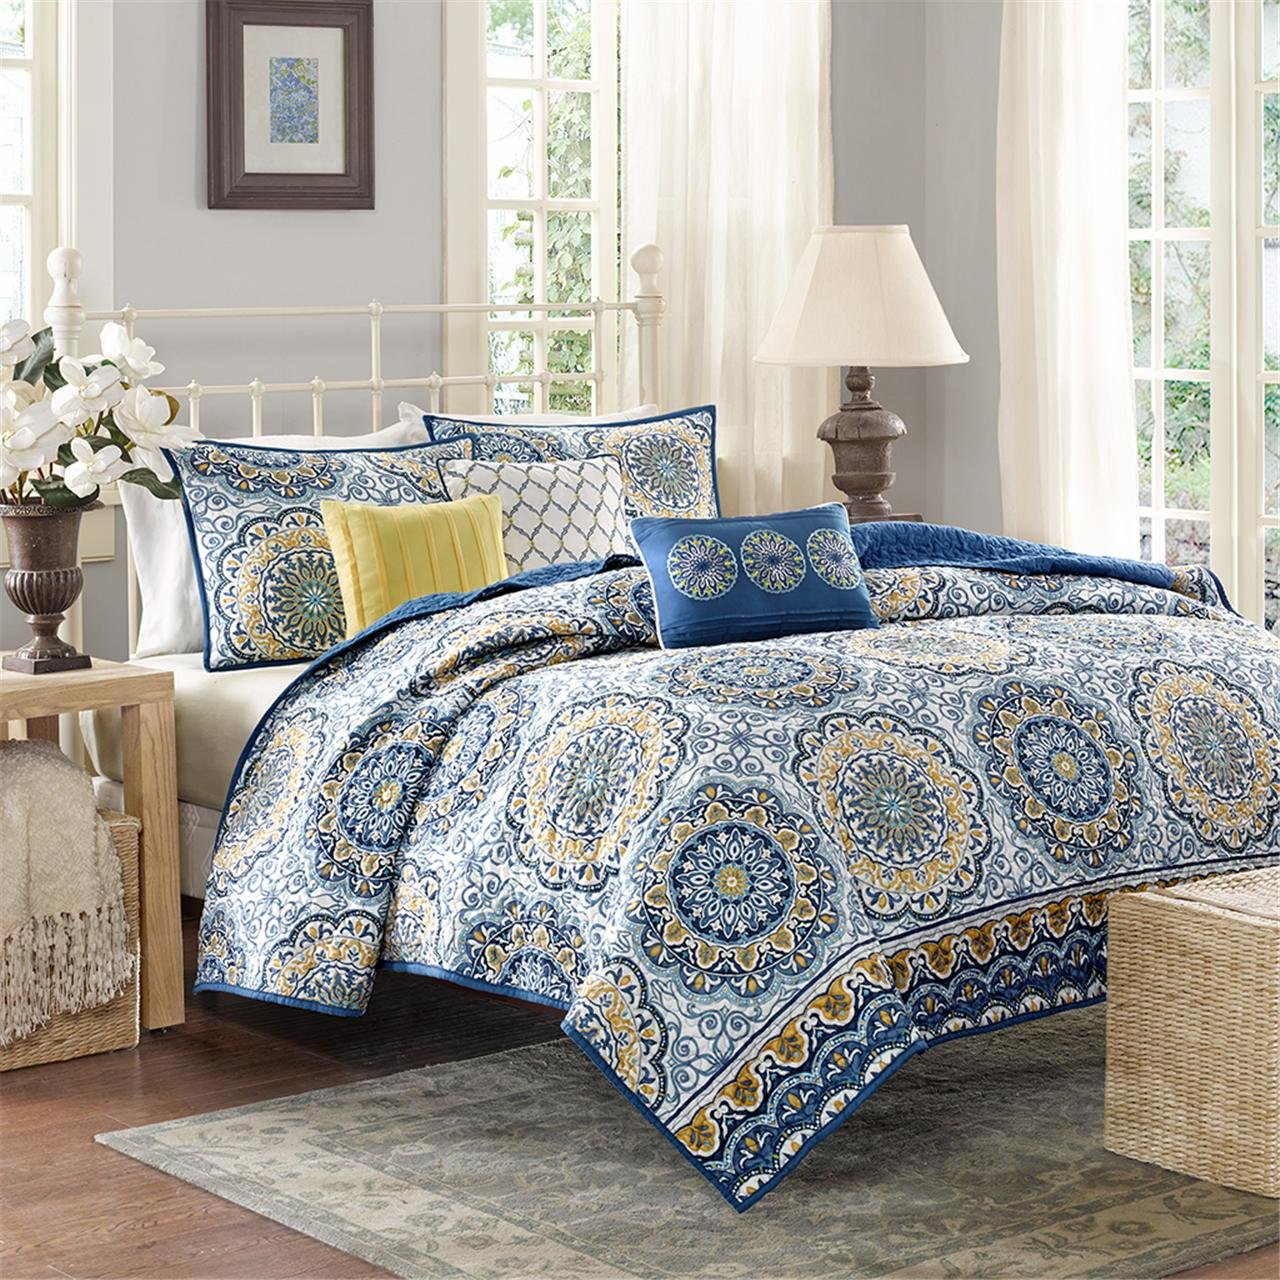 Amazon.com: Madison Park - Tangiers 6 Piece Coverlet Set - Blue ... : king quilt bedding sets - Adamdwight.com